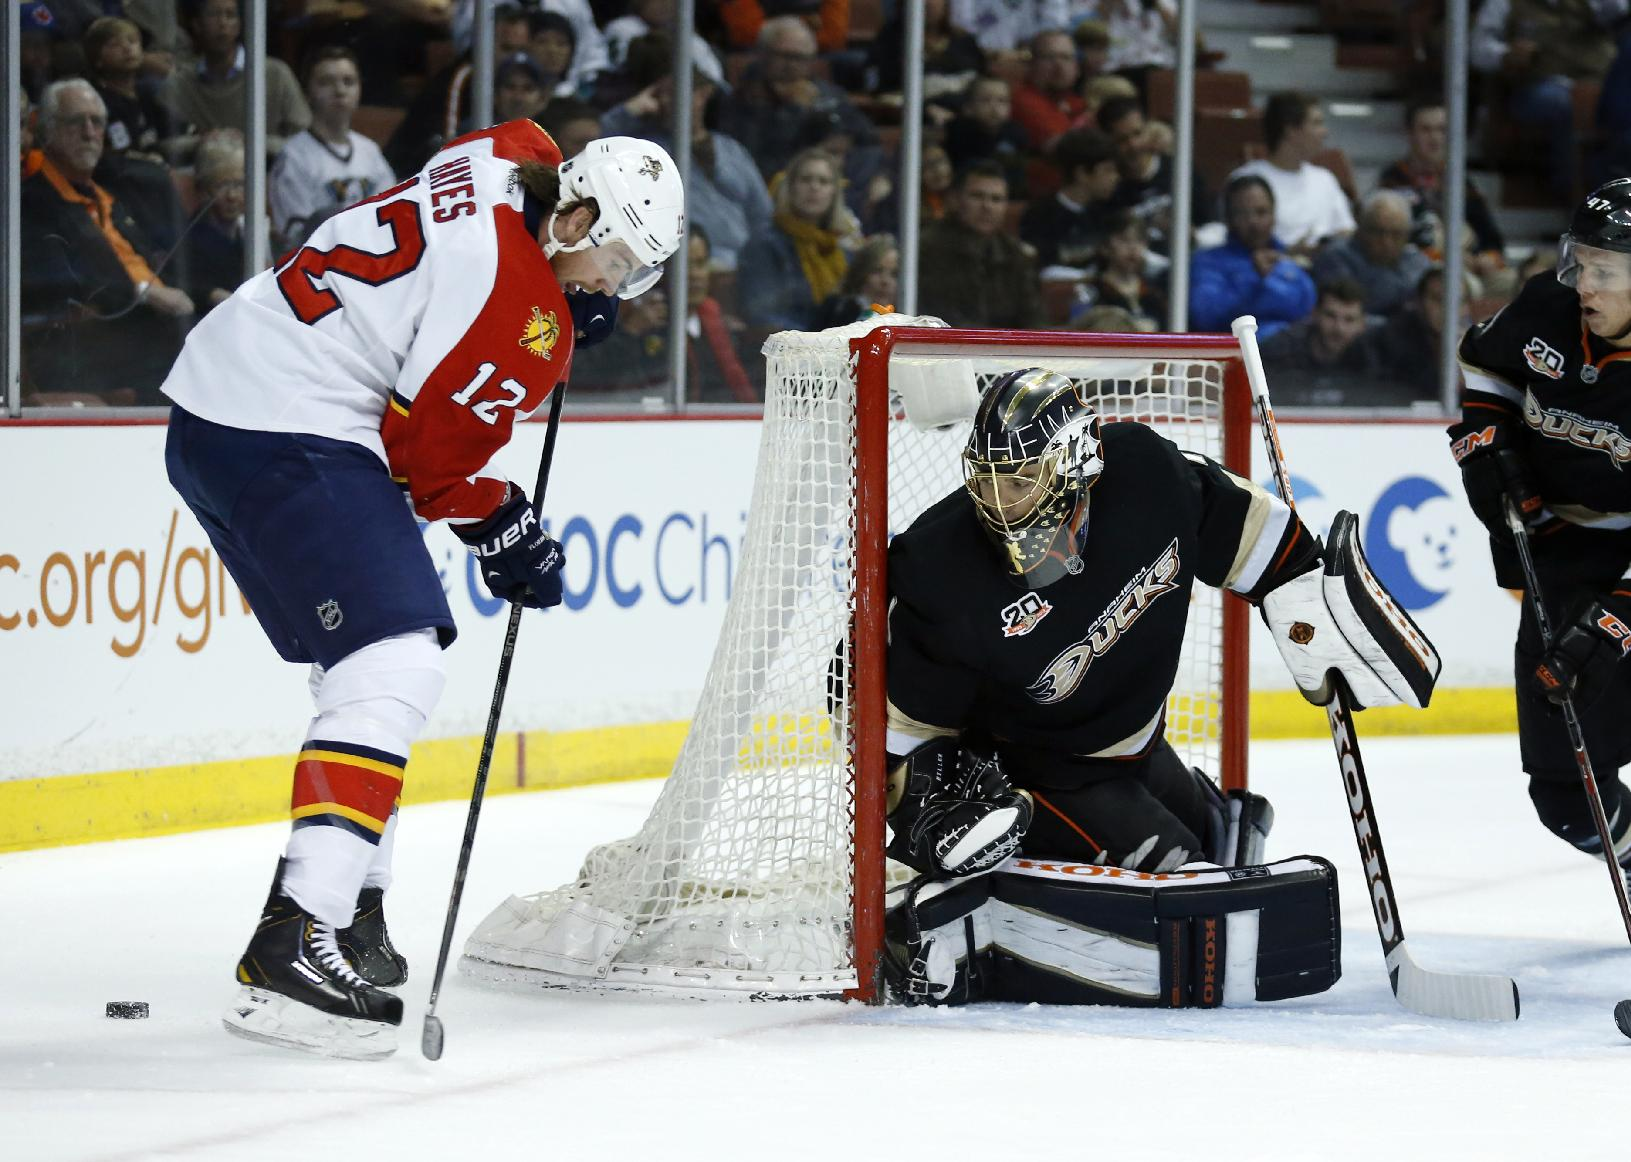 Anaheim Ducks end home skid, drill Panthers 6-2